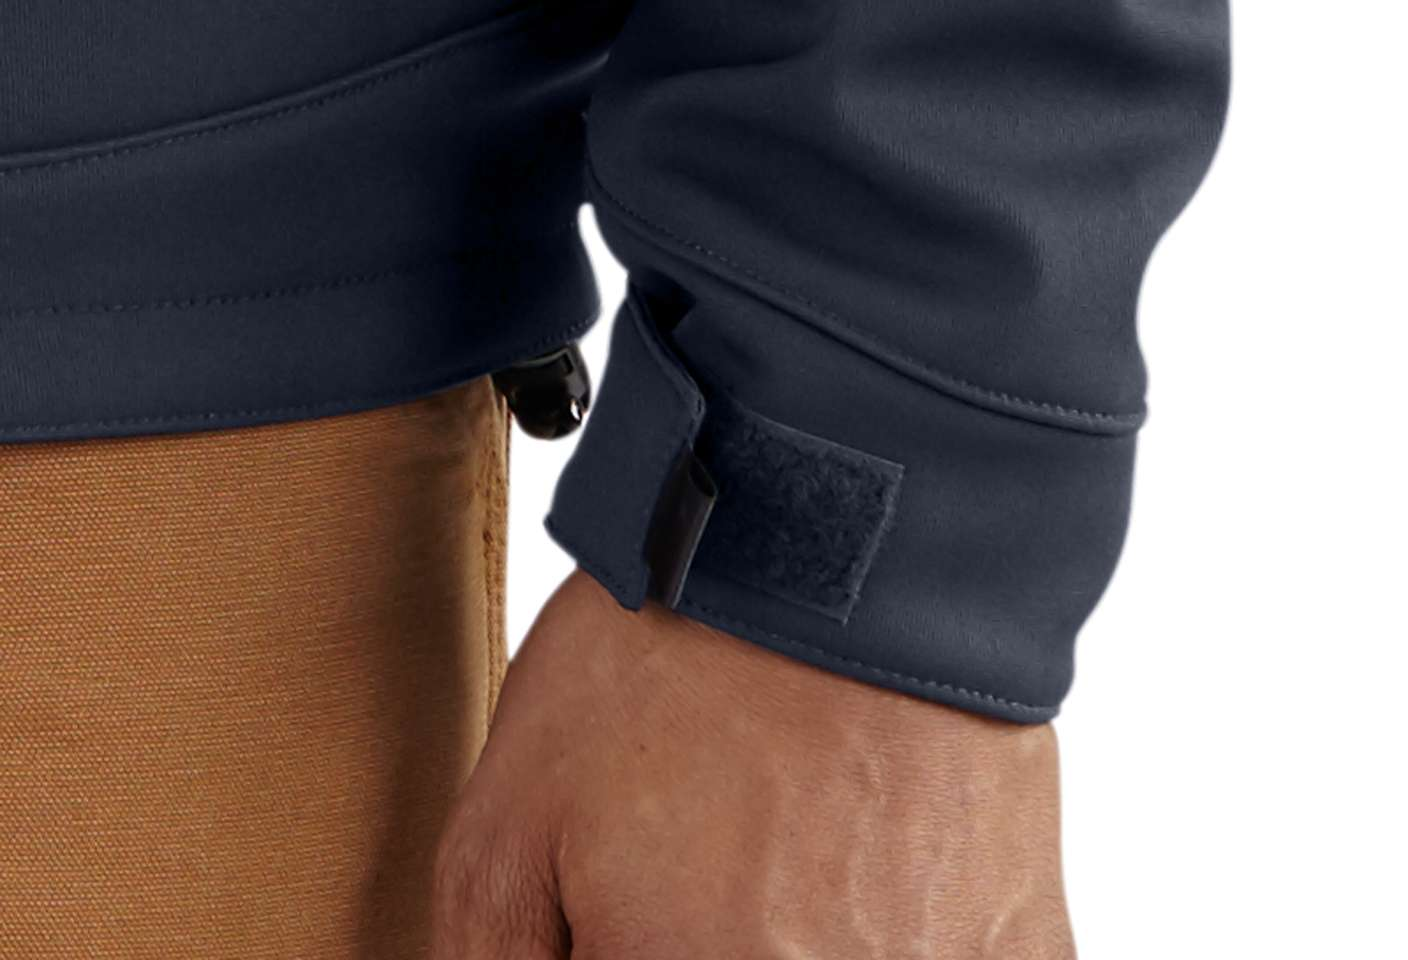 Hook-and-loop adjustable cuffs keep out the cold